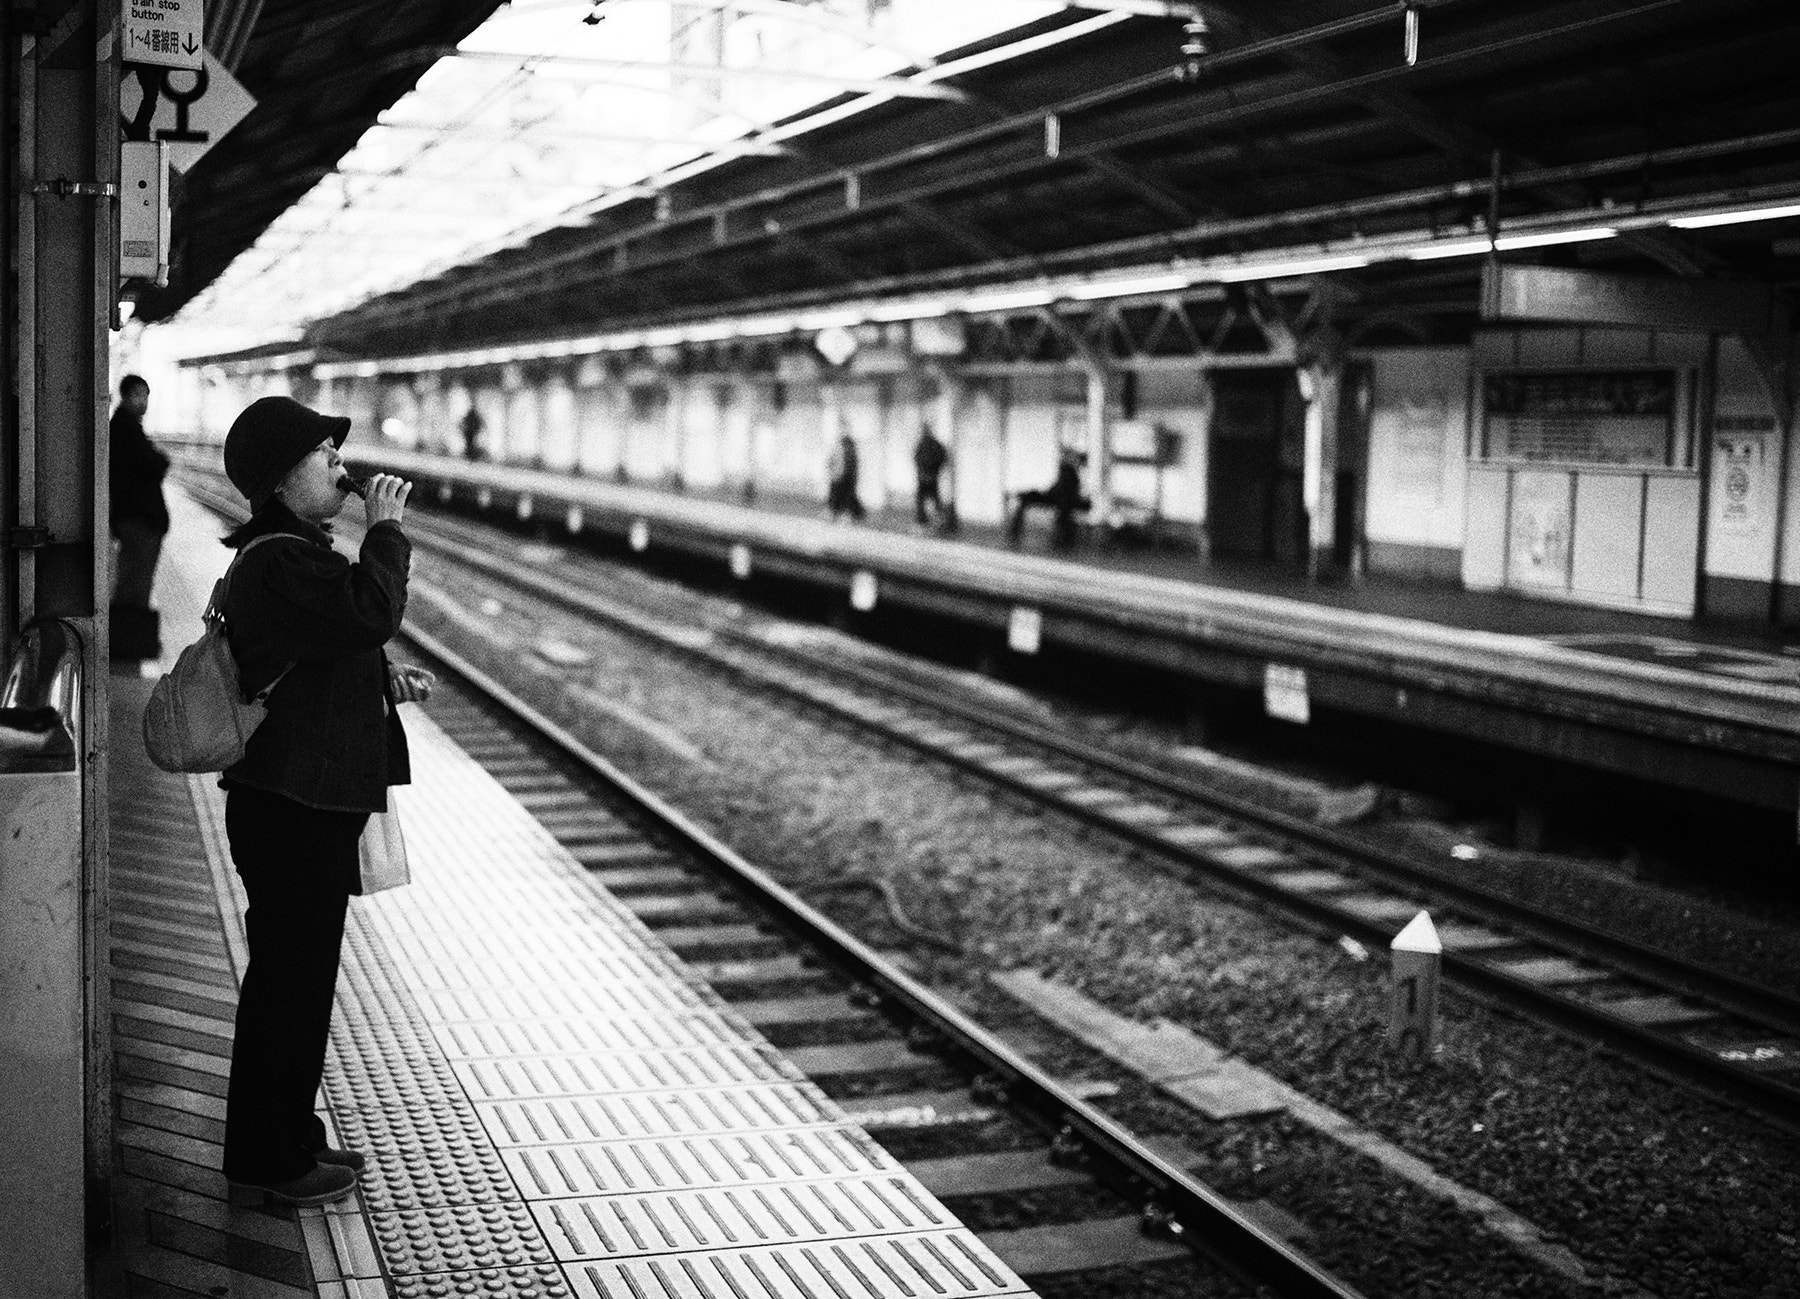 Photograph tokyo, 2013 by  momofuku on 500px